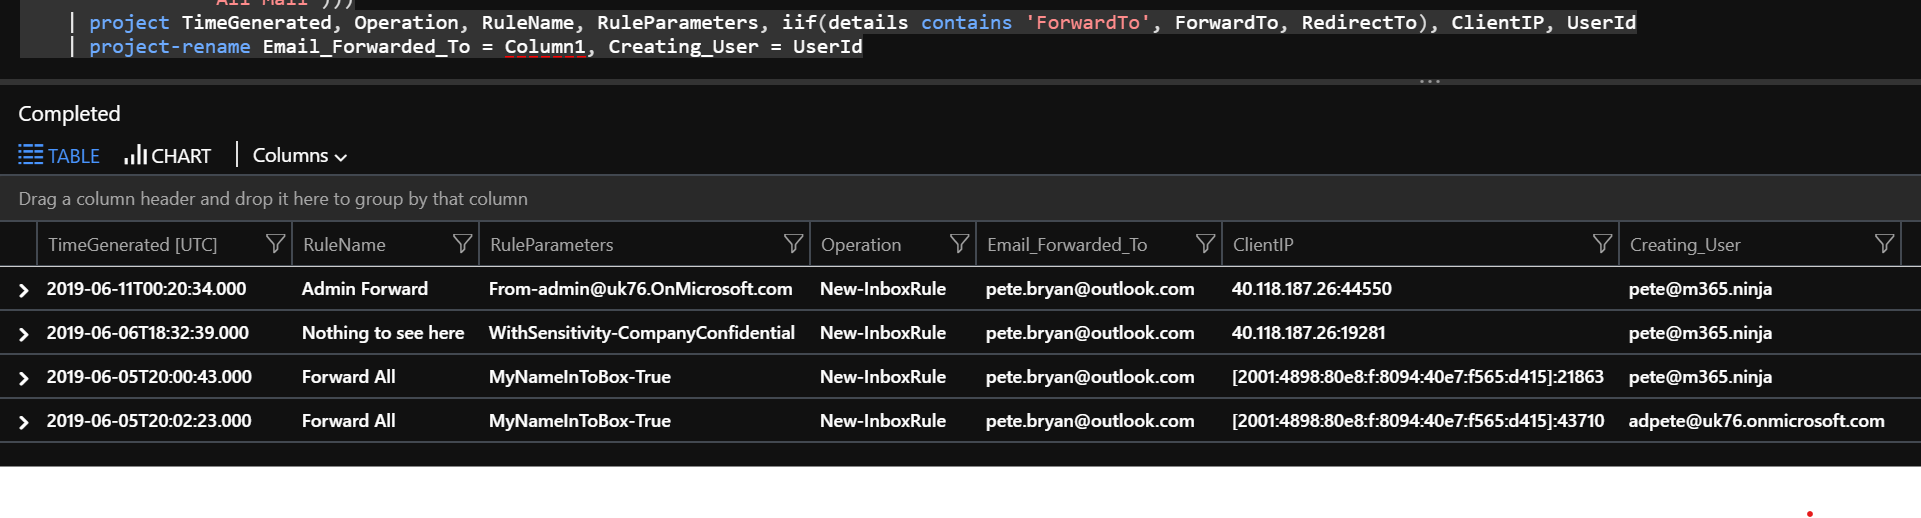 Screenshot of the output of the parser function in Azure Sentinel